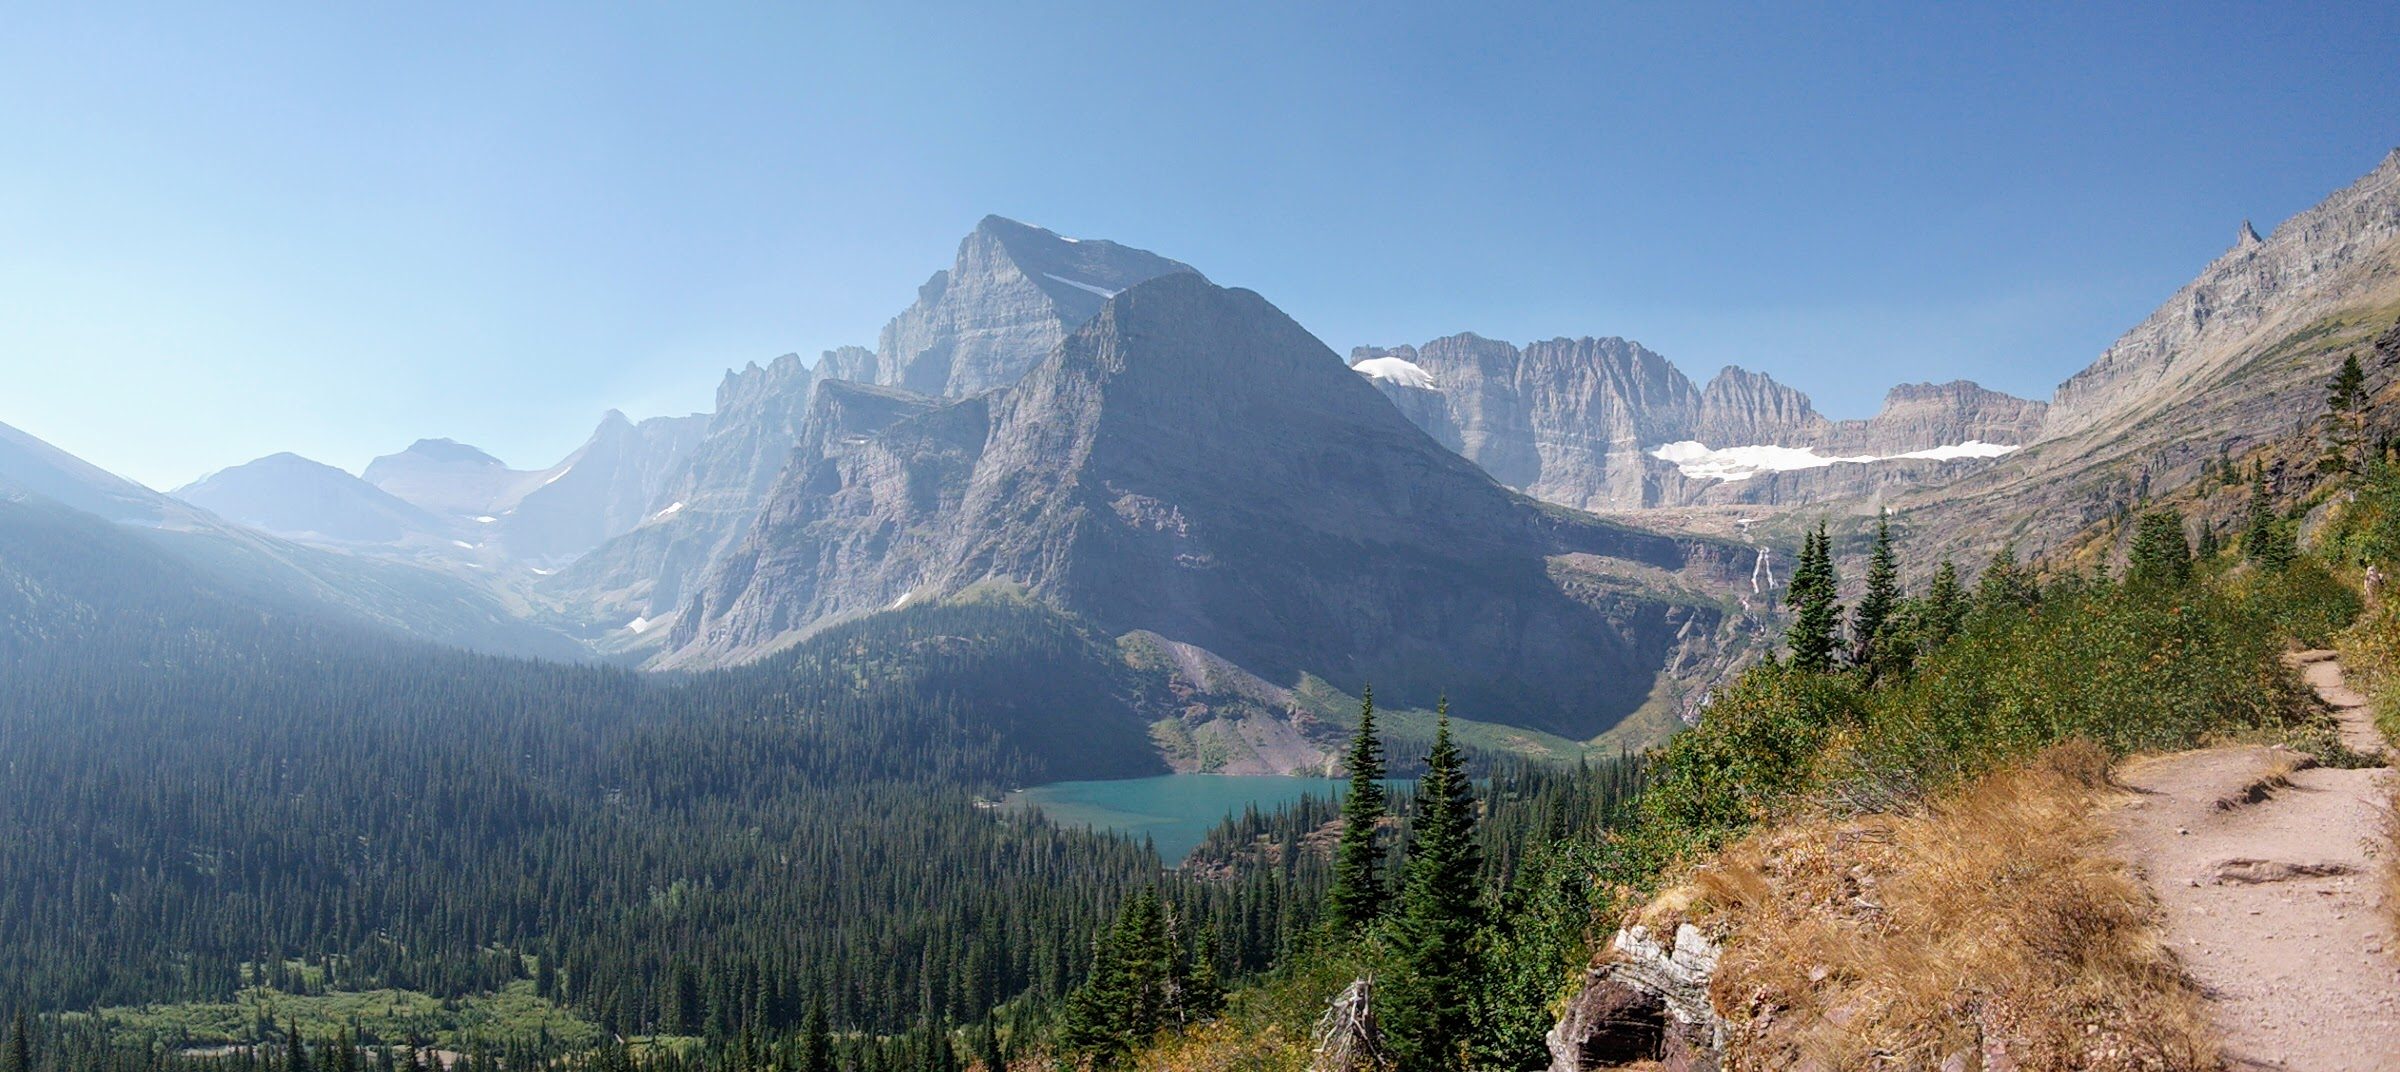 Approaching Lower Grinnell Lake